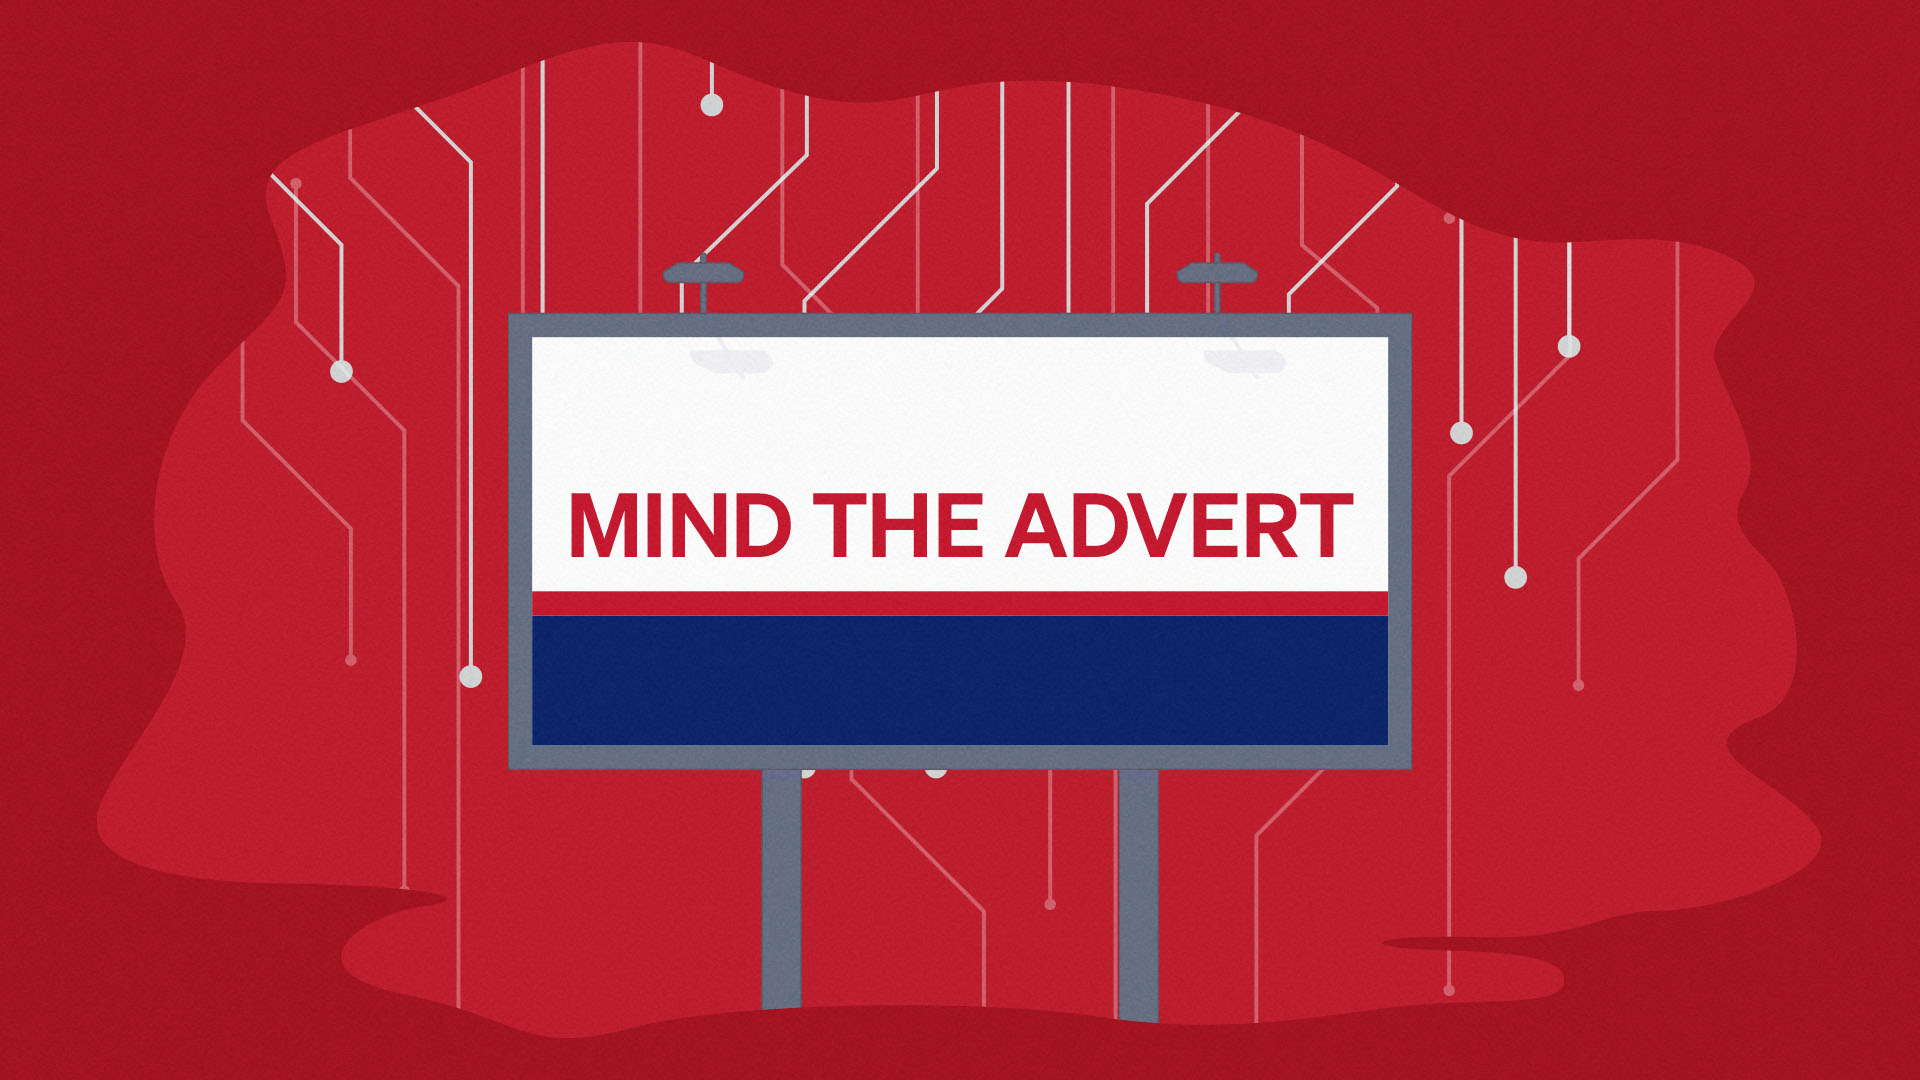 """The UK's Advertising Standards Authority (ASA) has called crypto marketing a """"red alert priority"""" as it prepares to get tough on """"misleading"""" and """"irresponsible"""" ads, reports the Financial Times (FT)."""